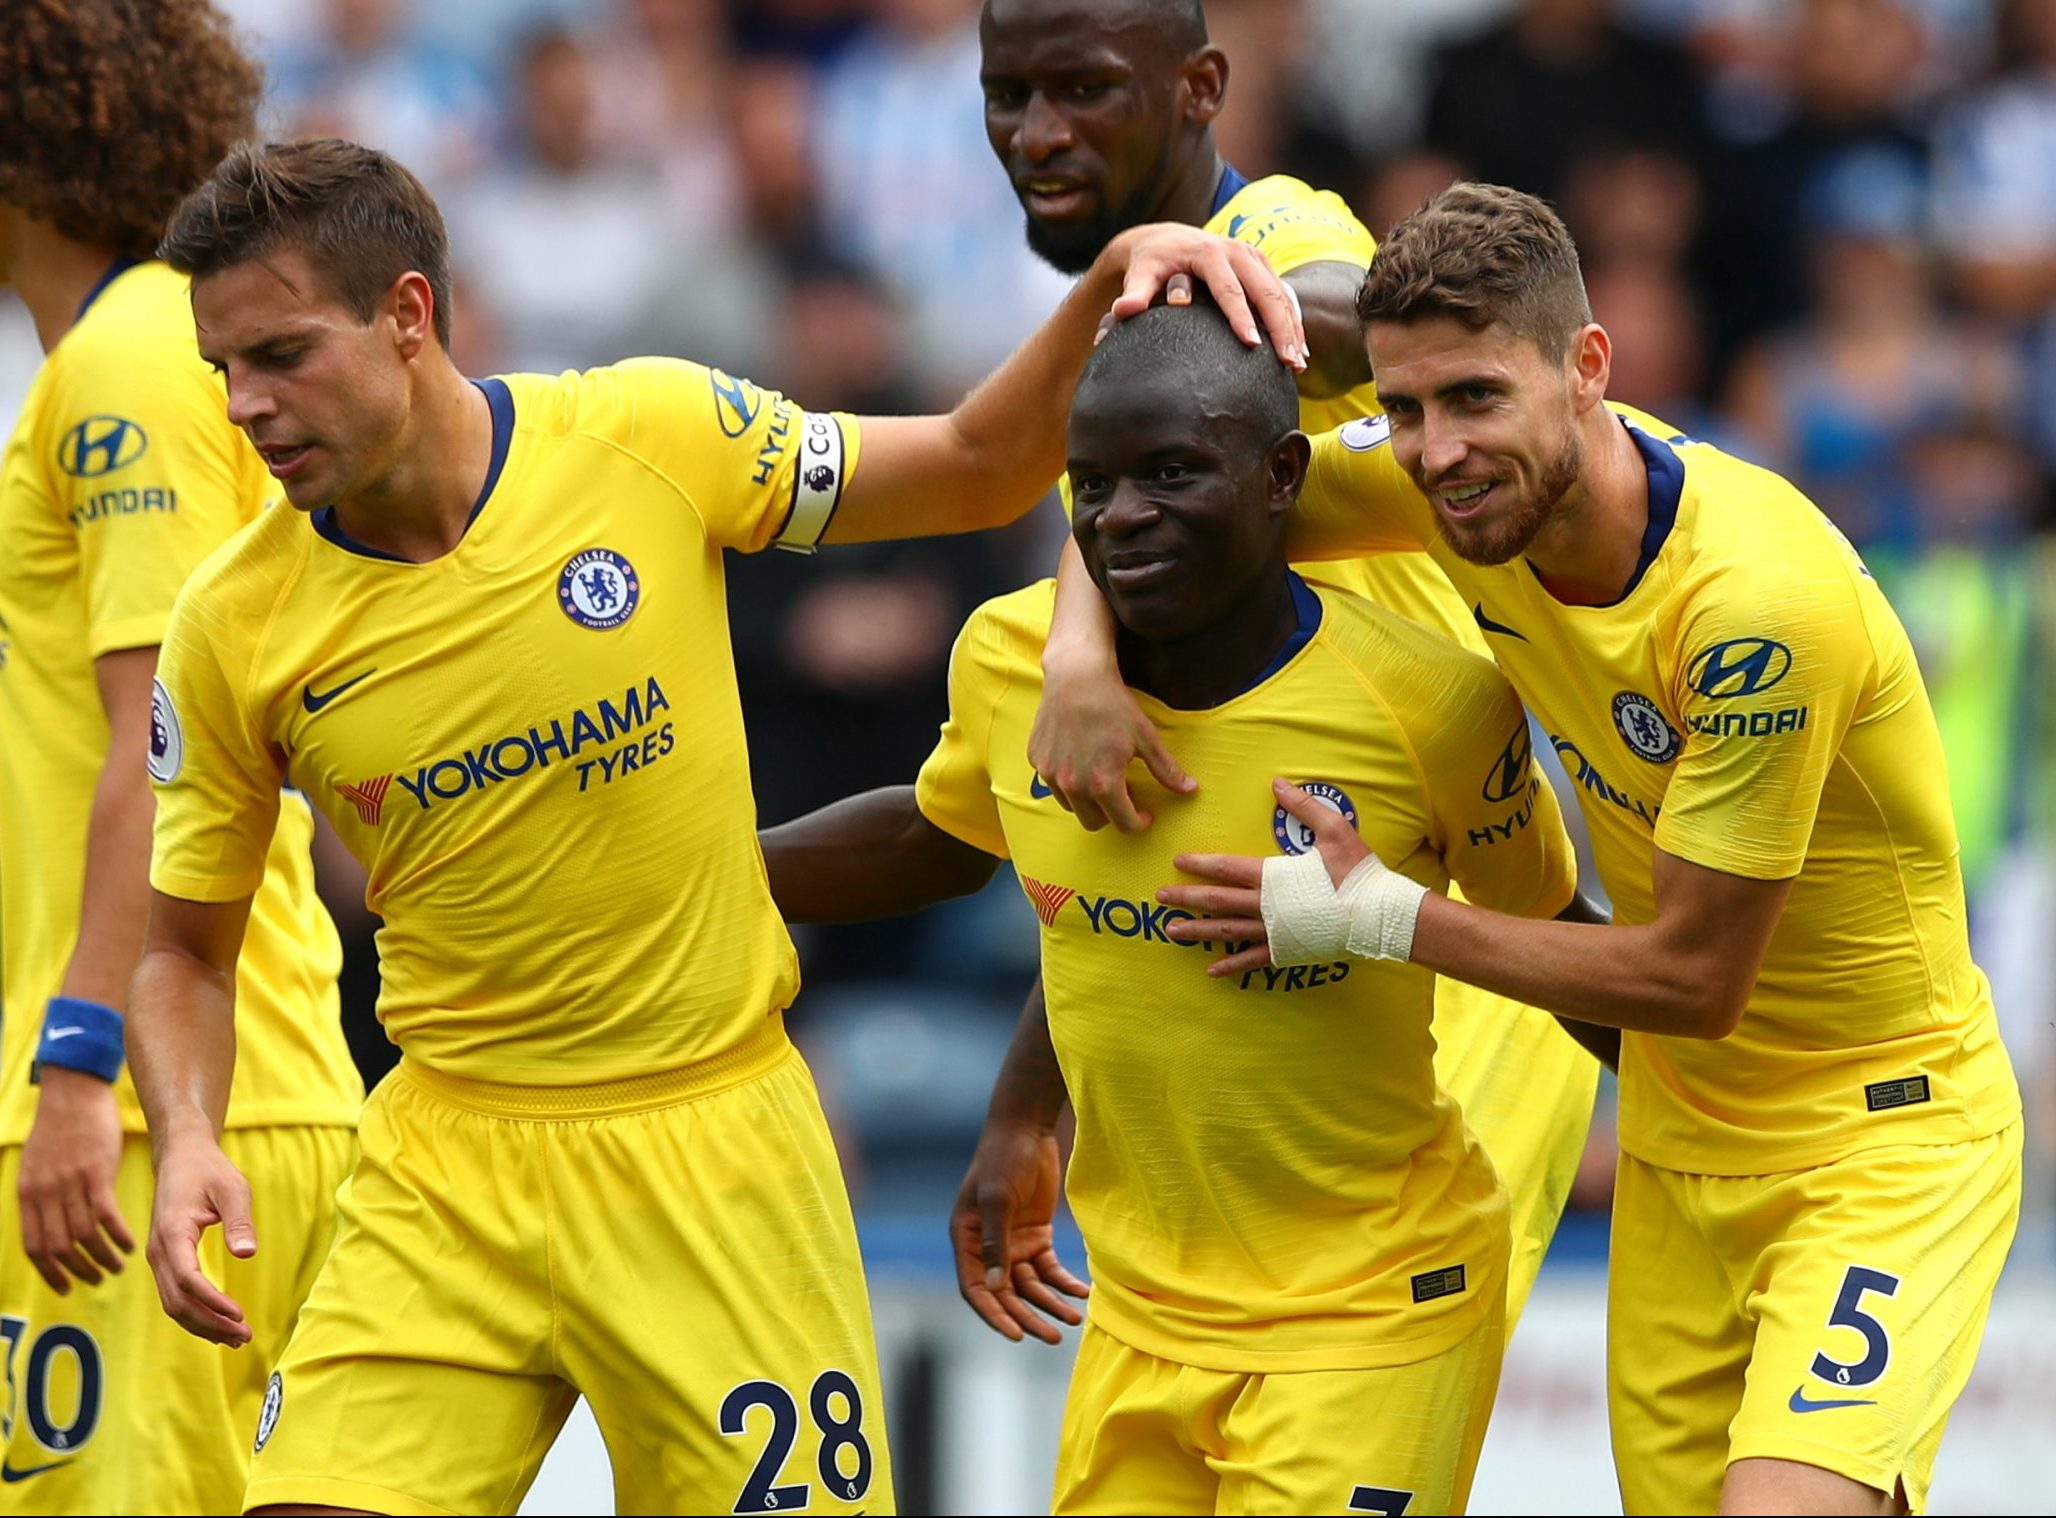 HUDDERSFIELD, ENGLAND - AUGUST 11: N'golo Kante of Chelsea celebrates with teammates after scoring his team's first goal during the Premier League match between Huddersfield Town and Chelsea FC at John Smith's Stadium on August 11, 2018 in Huddersfield, United Kingdom. (Photo by Matthew Lewis/Getty Images)